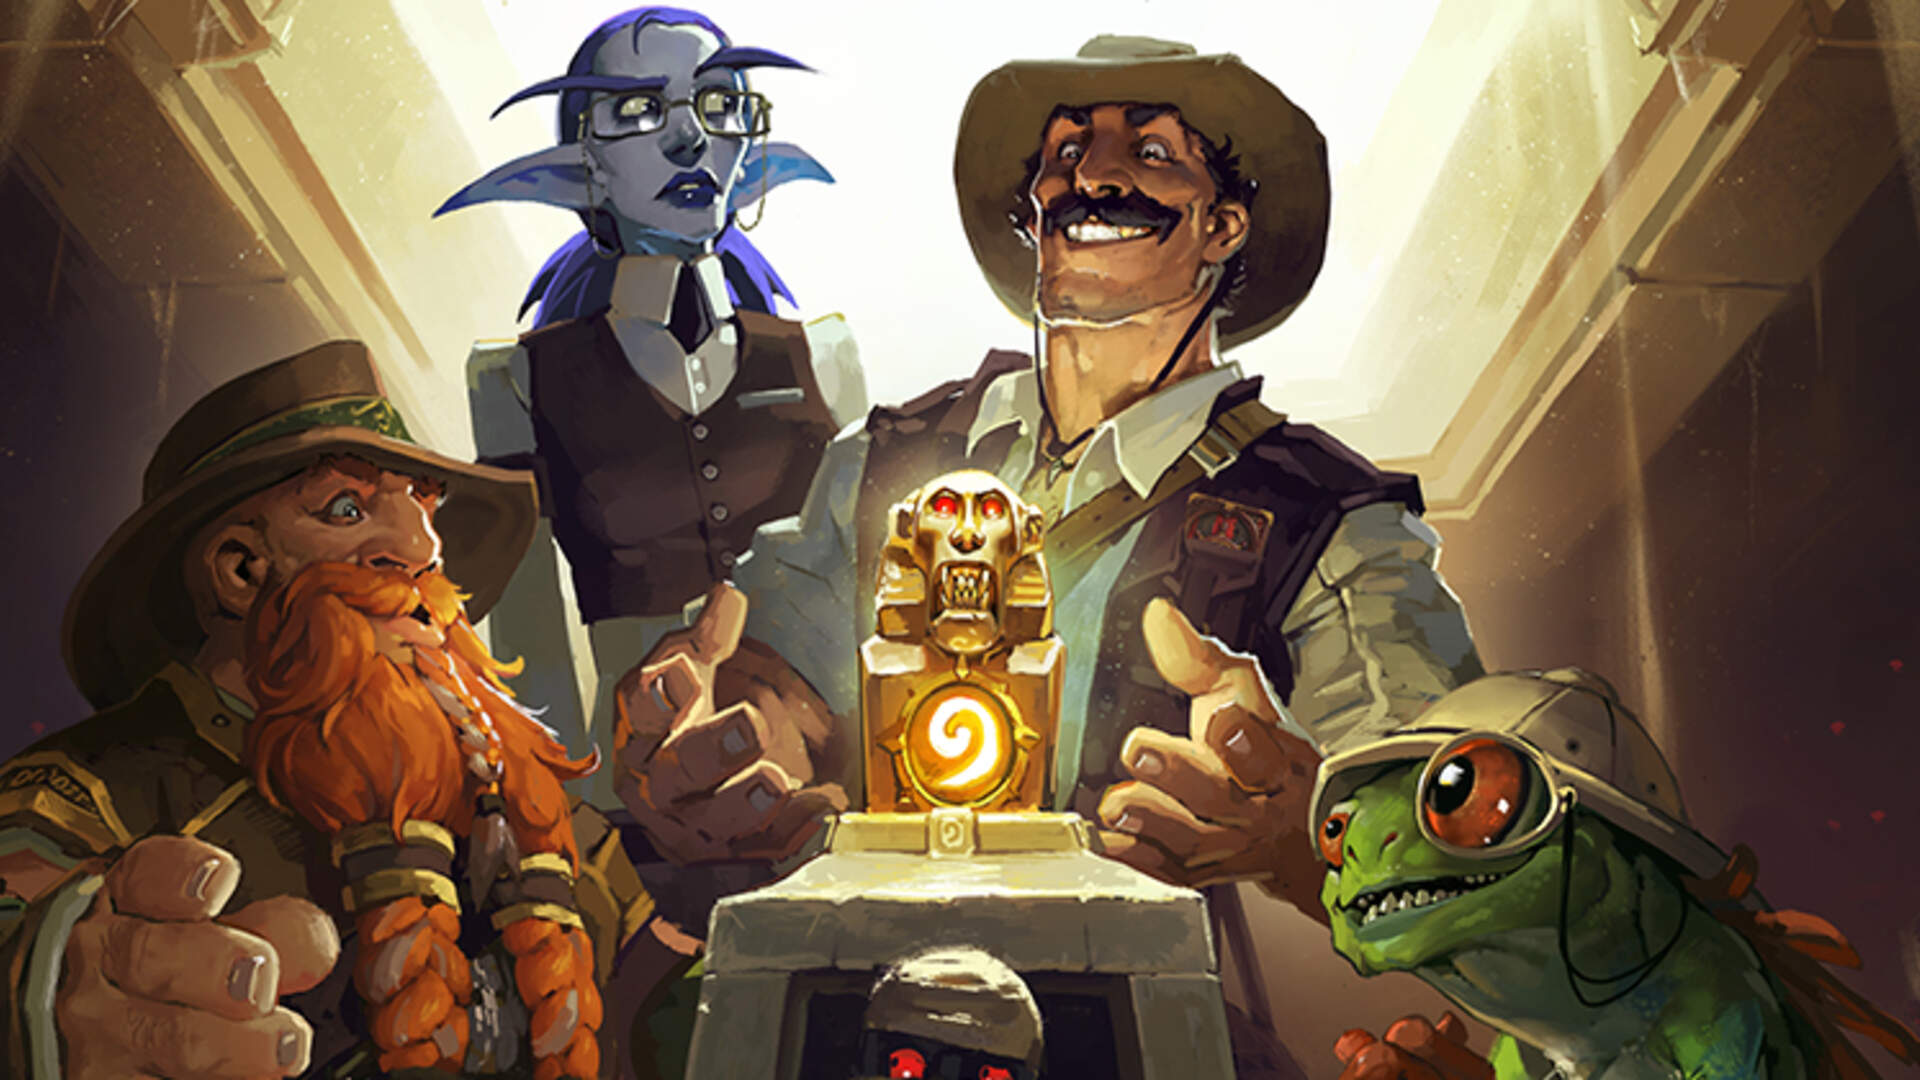 A New Hearthstone Adventure is Coming: The League of Explorers